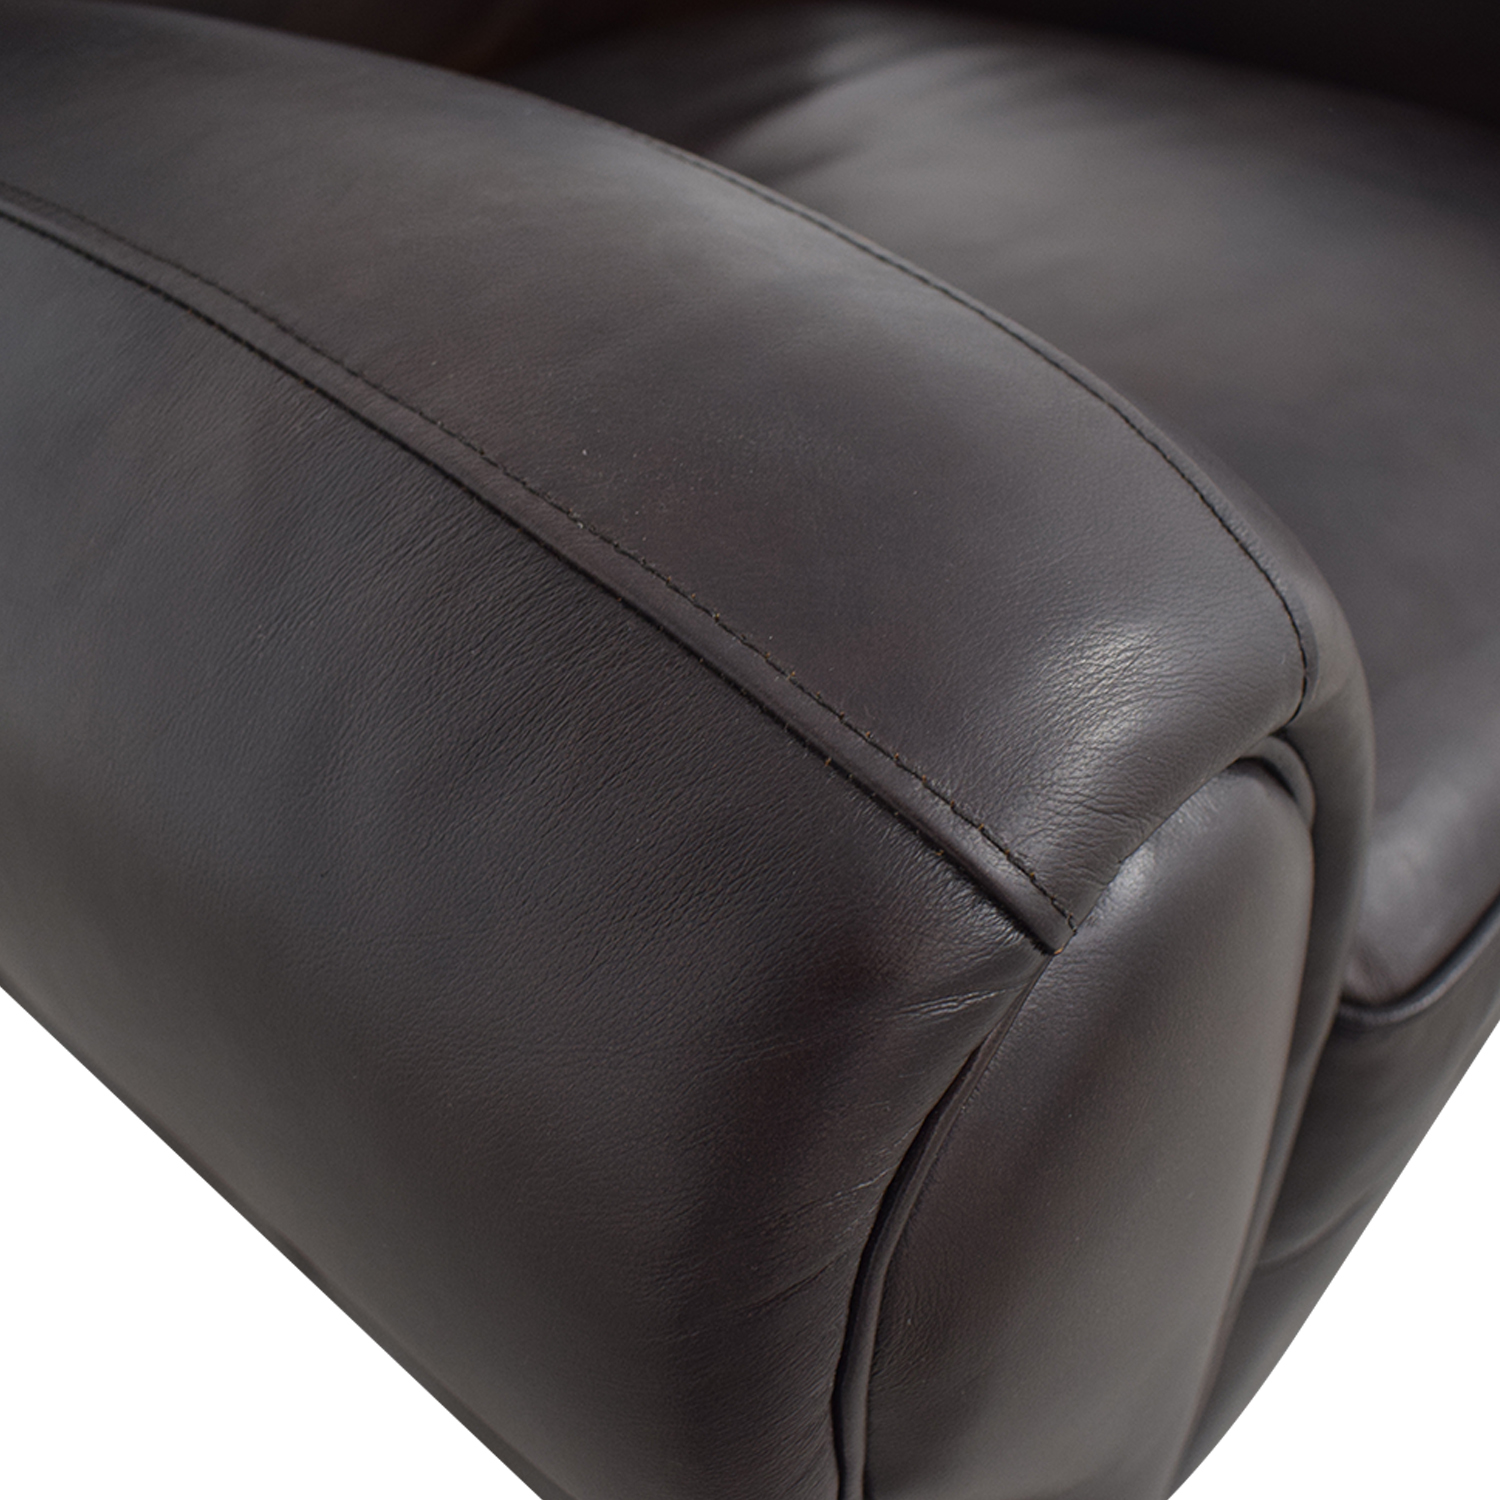 At Home Designs Ambassador Glider Recliner / Chairs